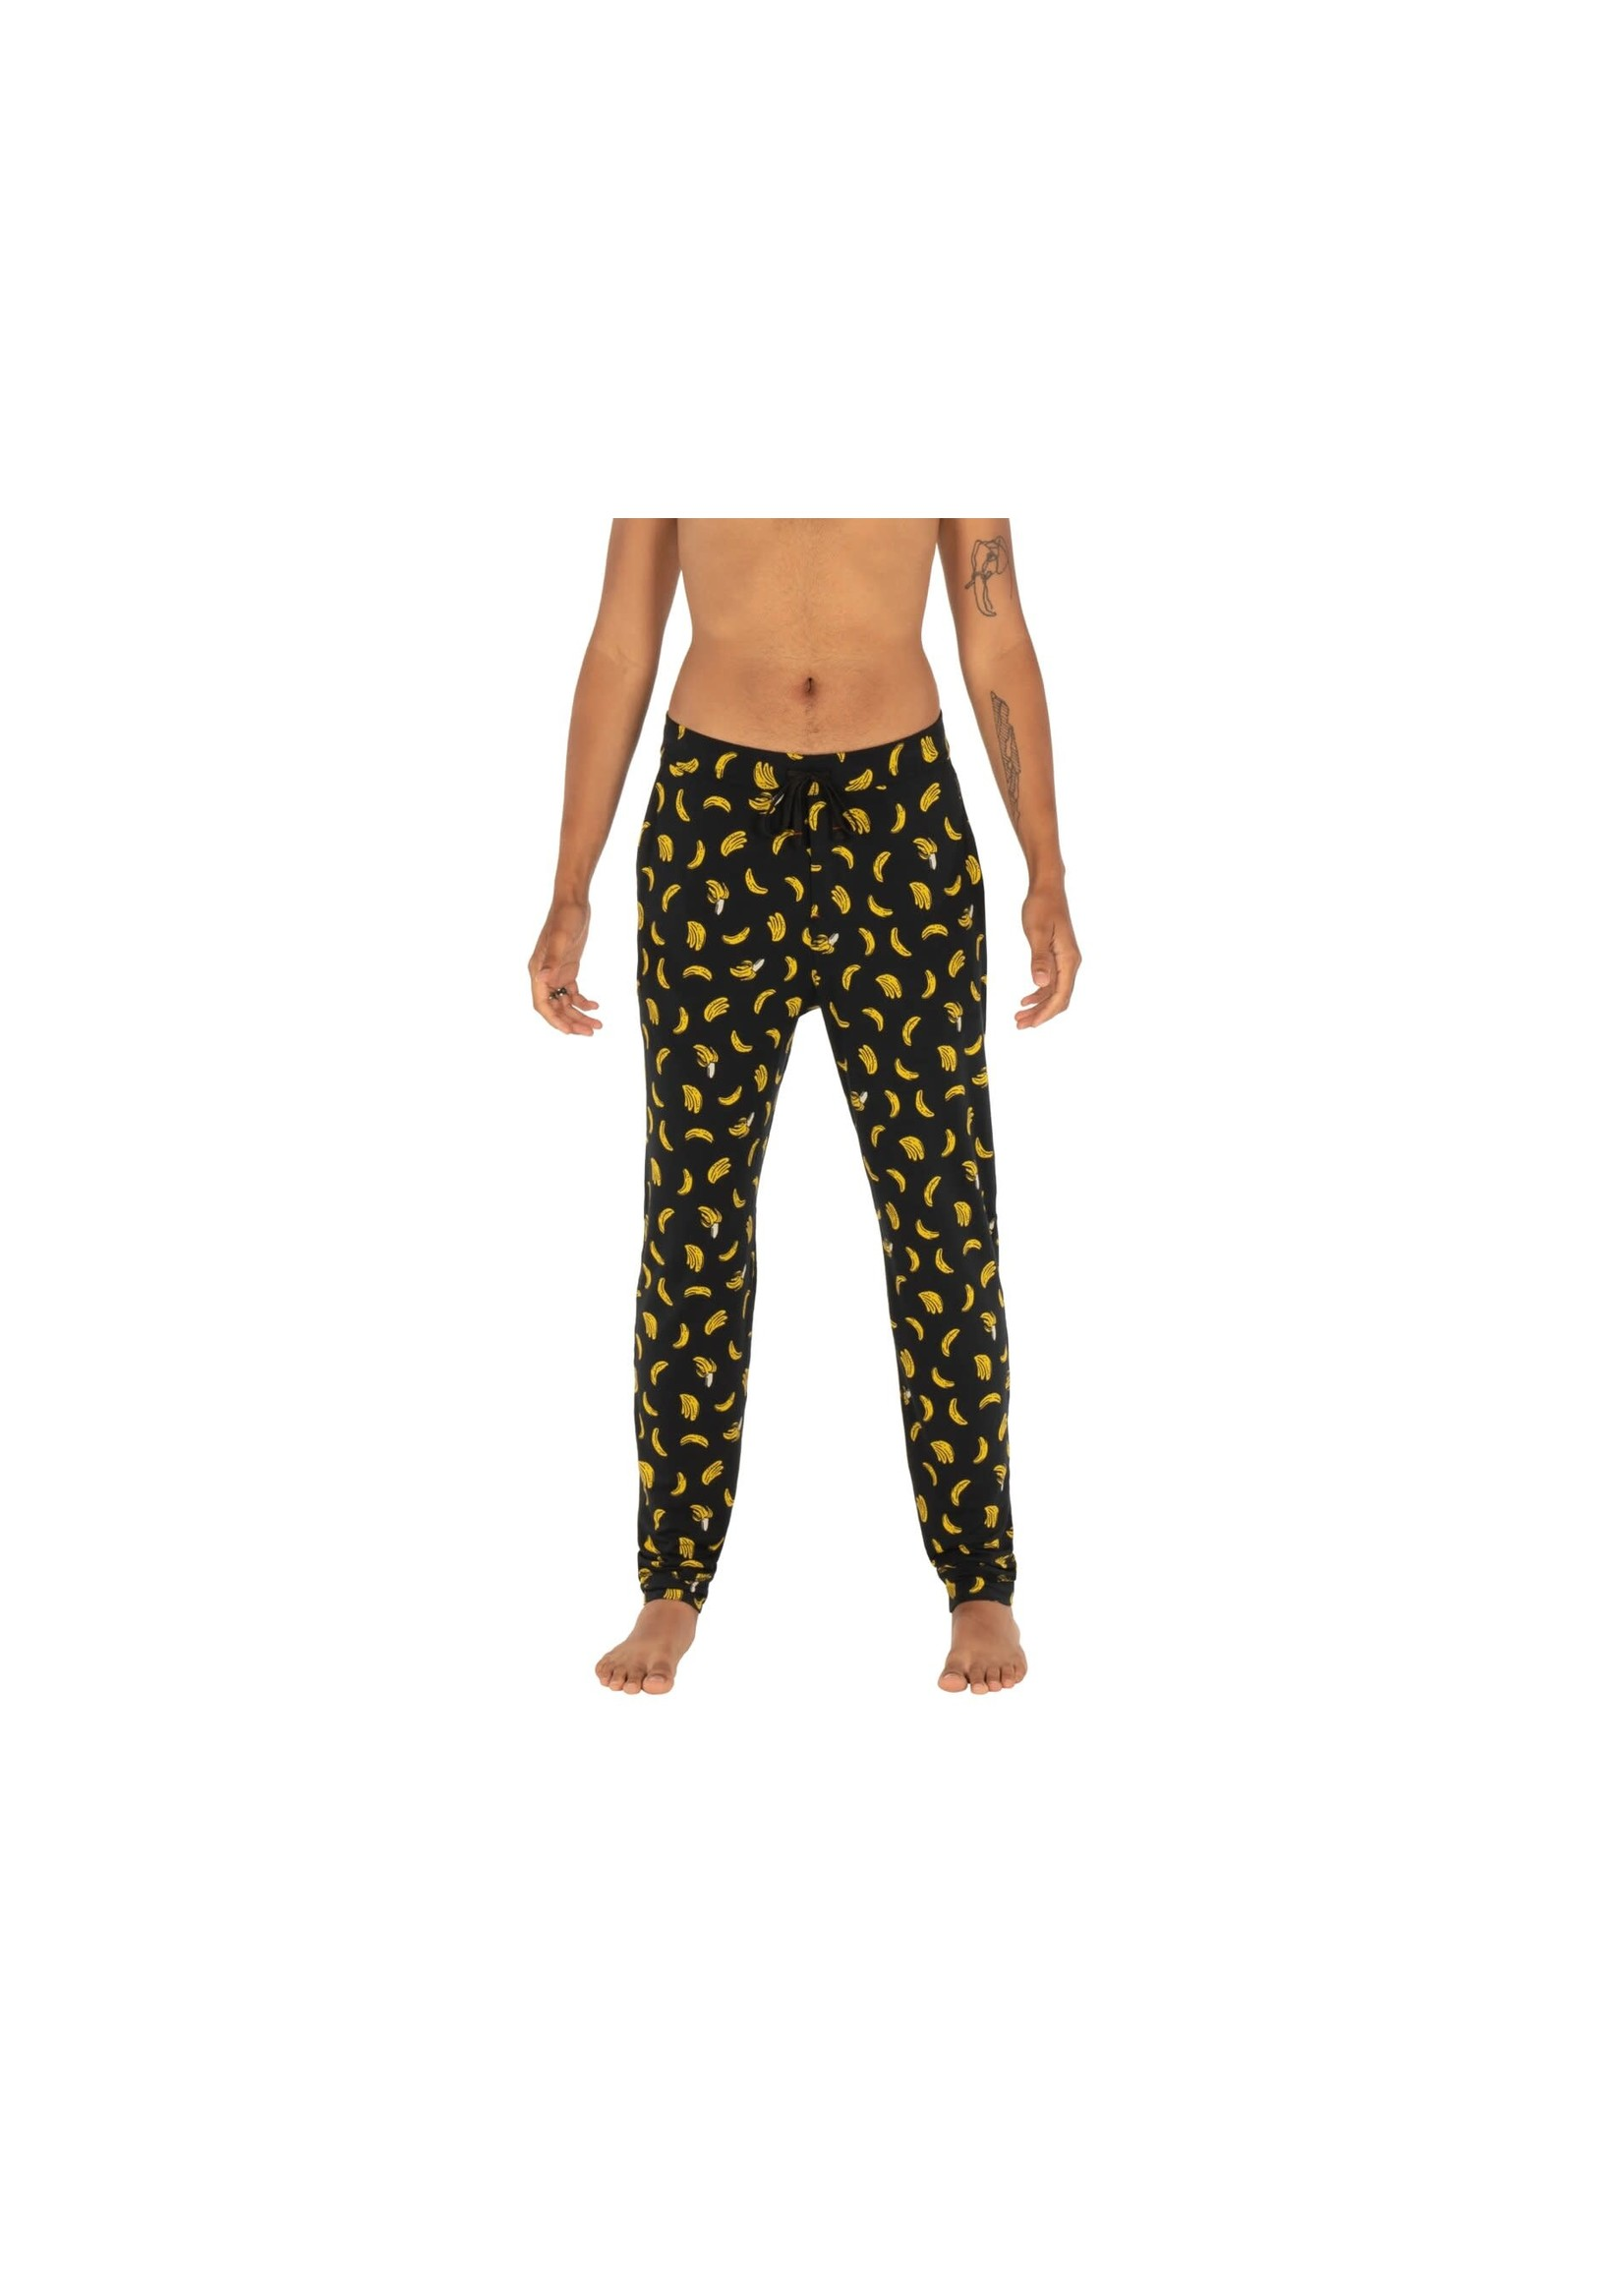 Saxx Snooze Pant Black Banana